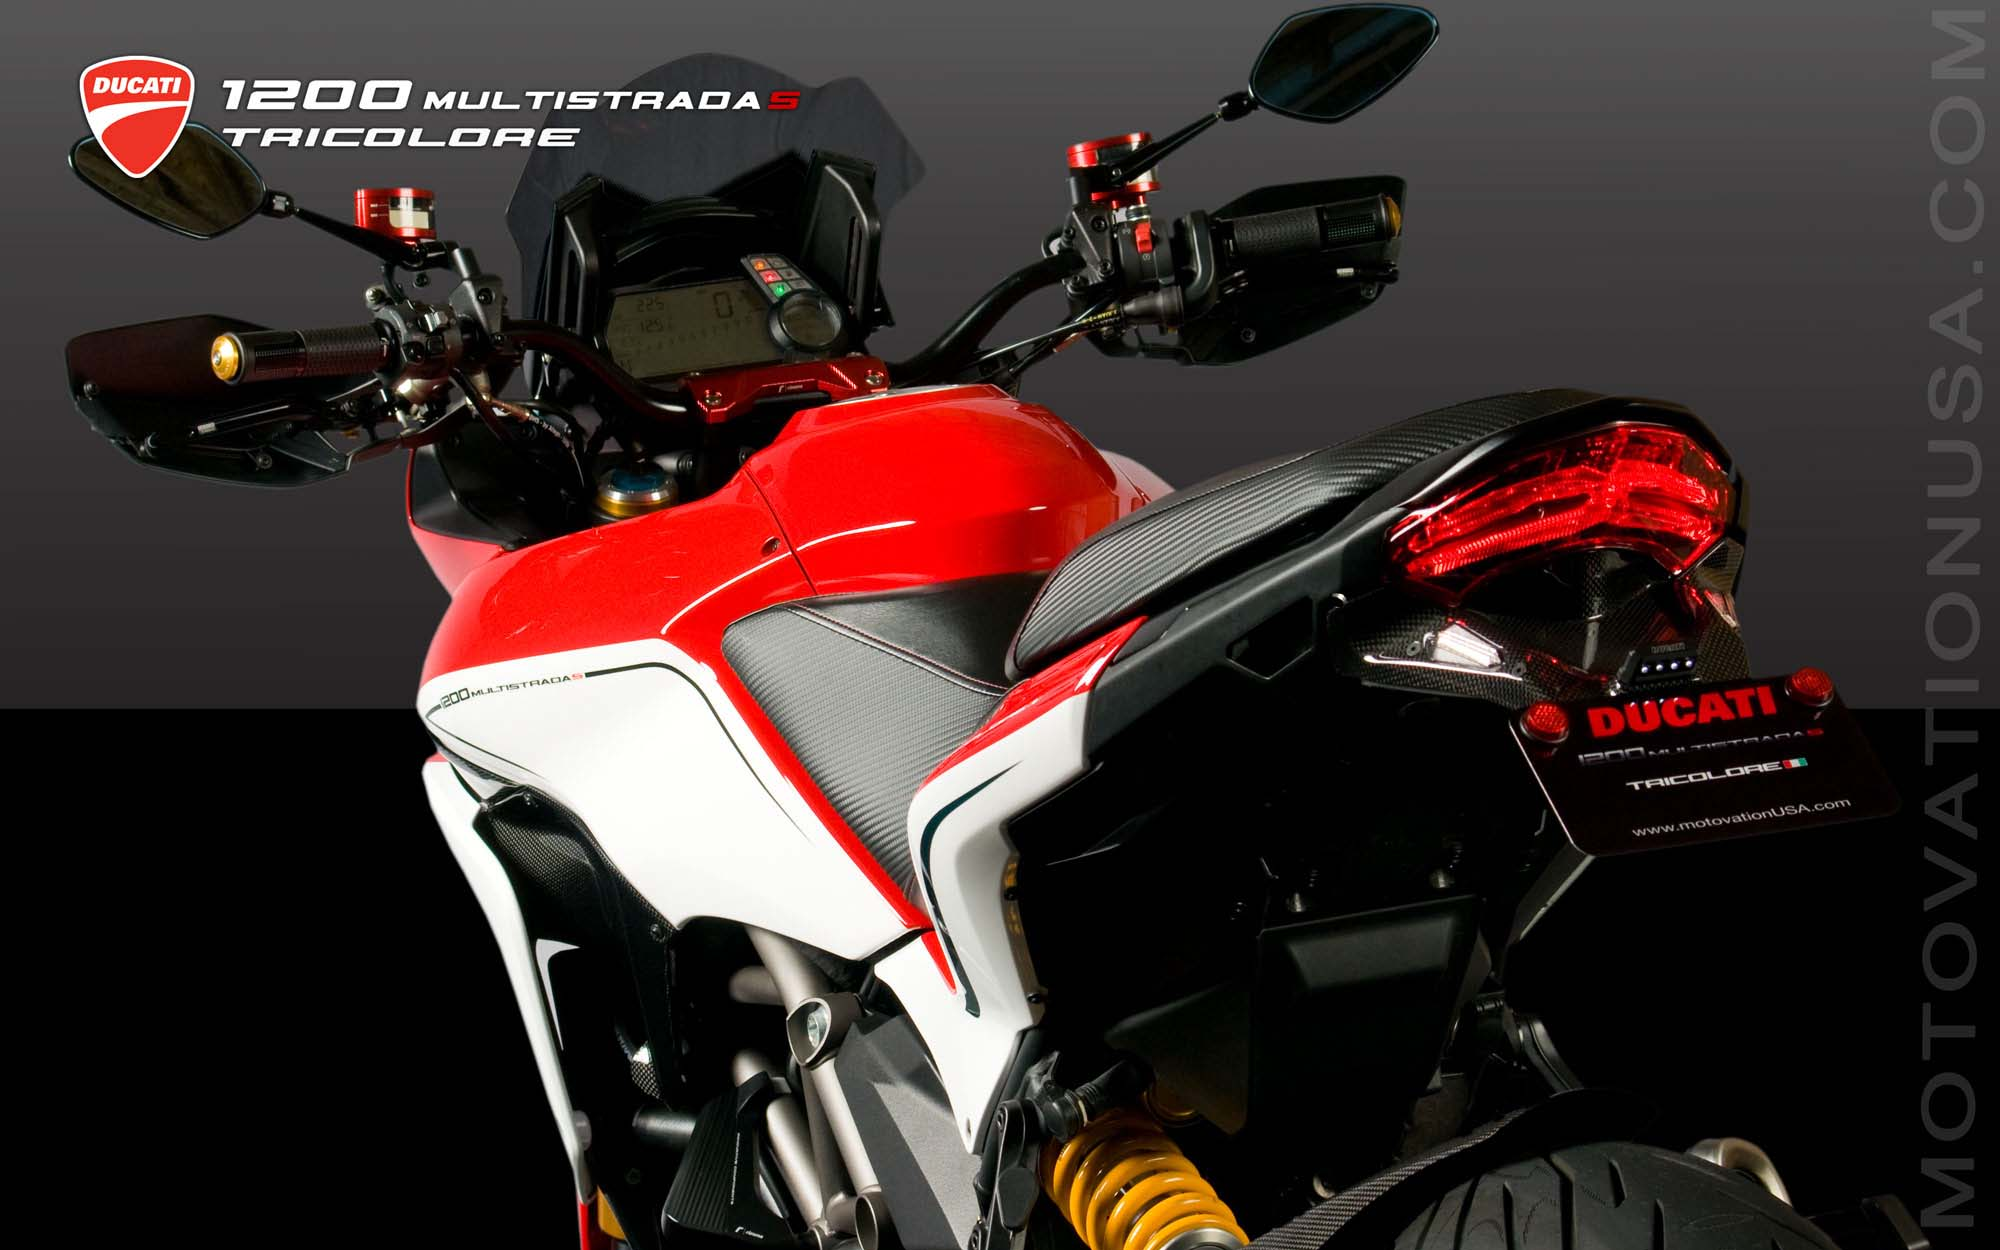 Ducati Multistrada 1200S Touring hd Wallpaper  (2000 × 1250)